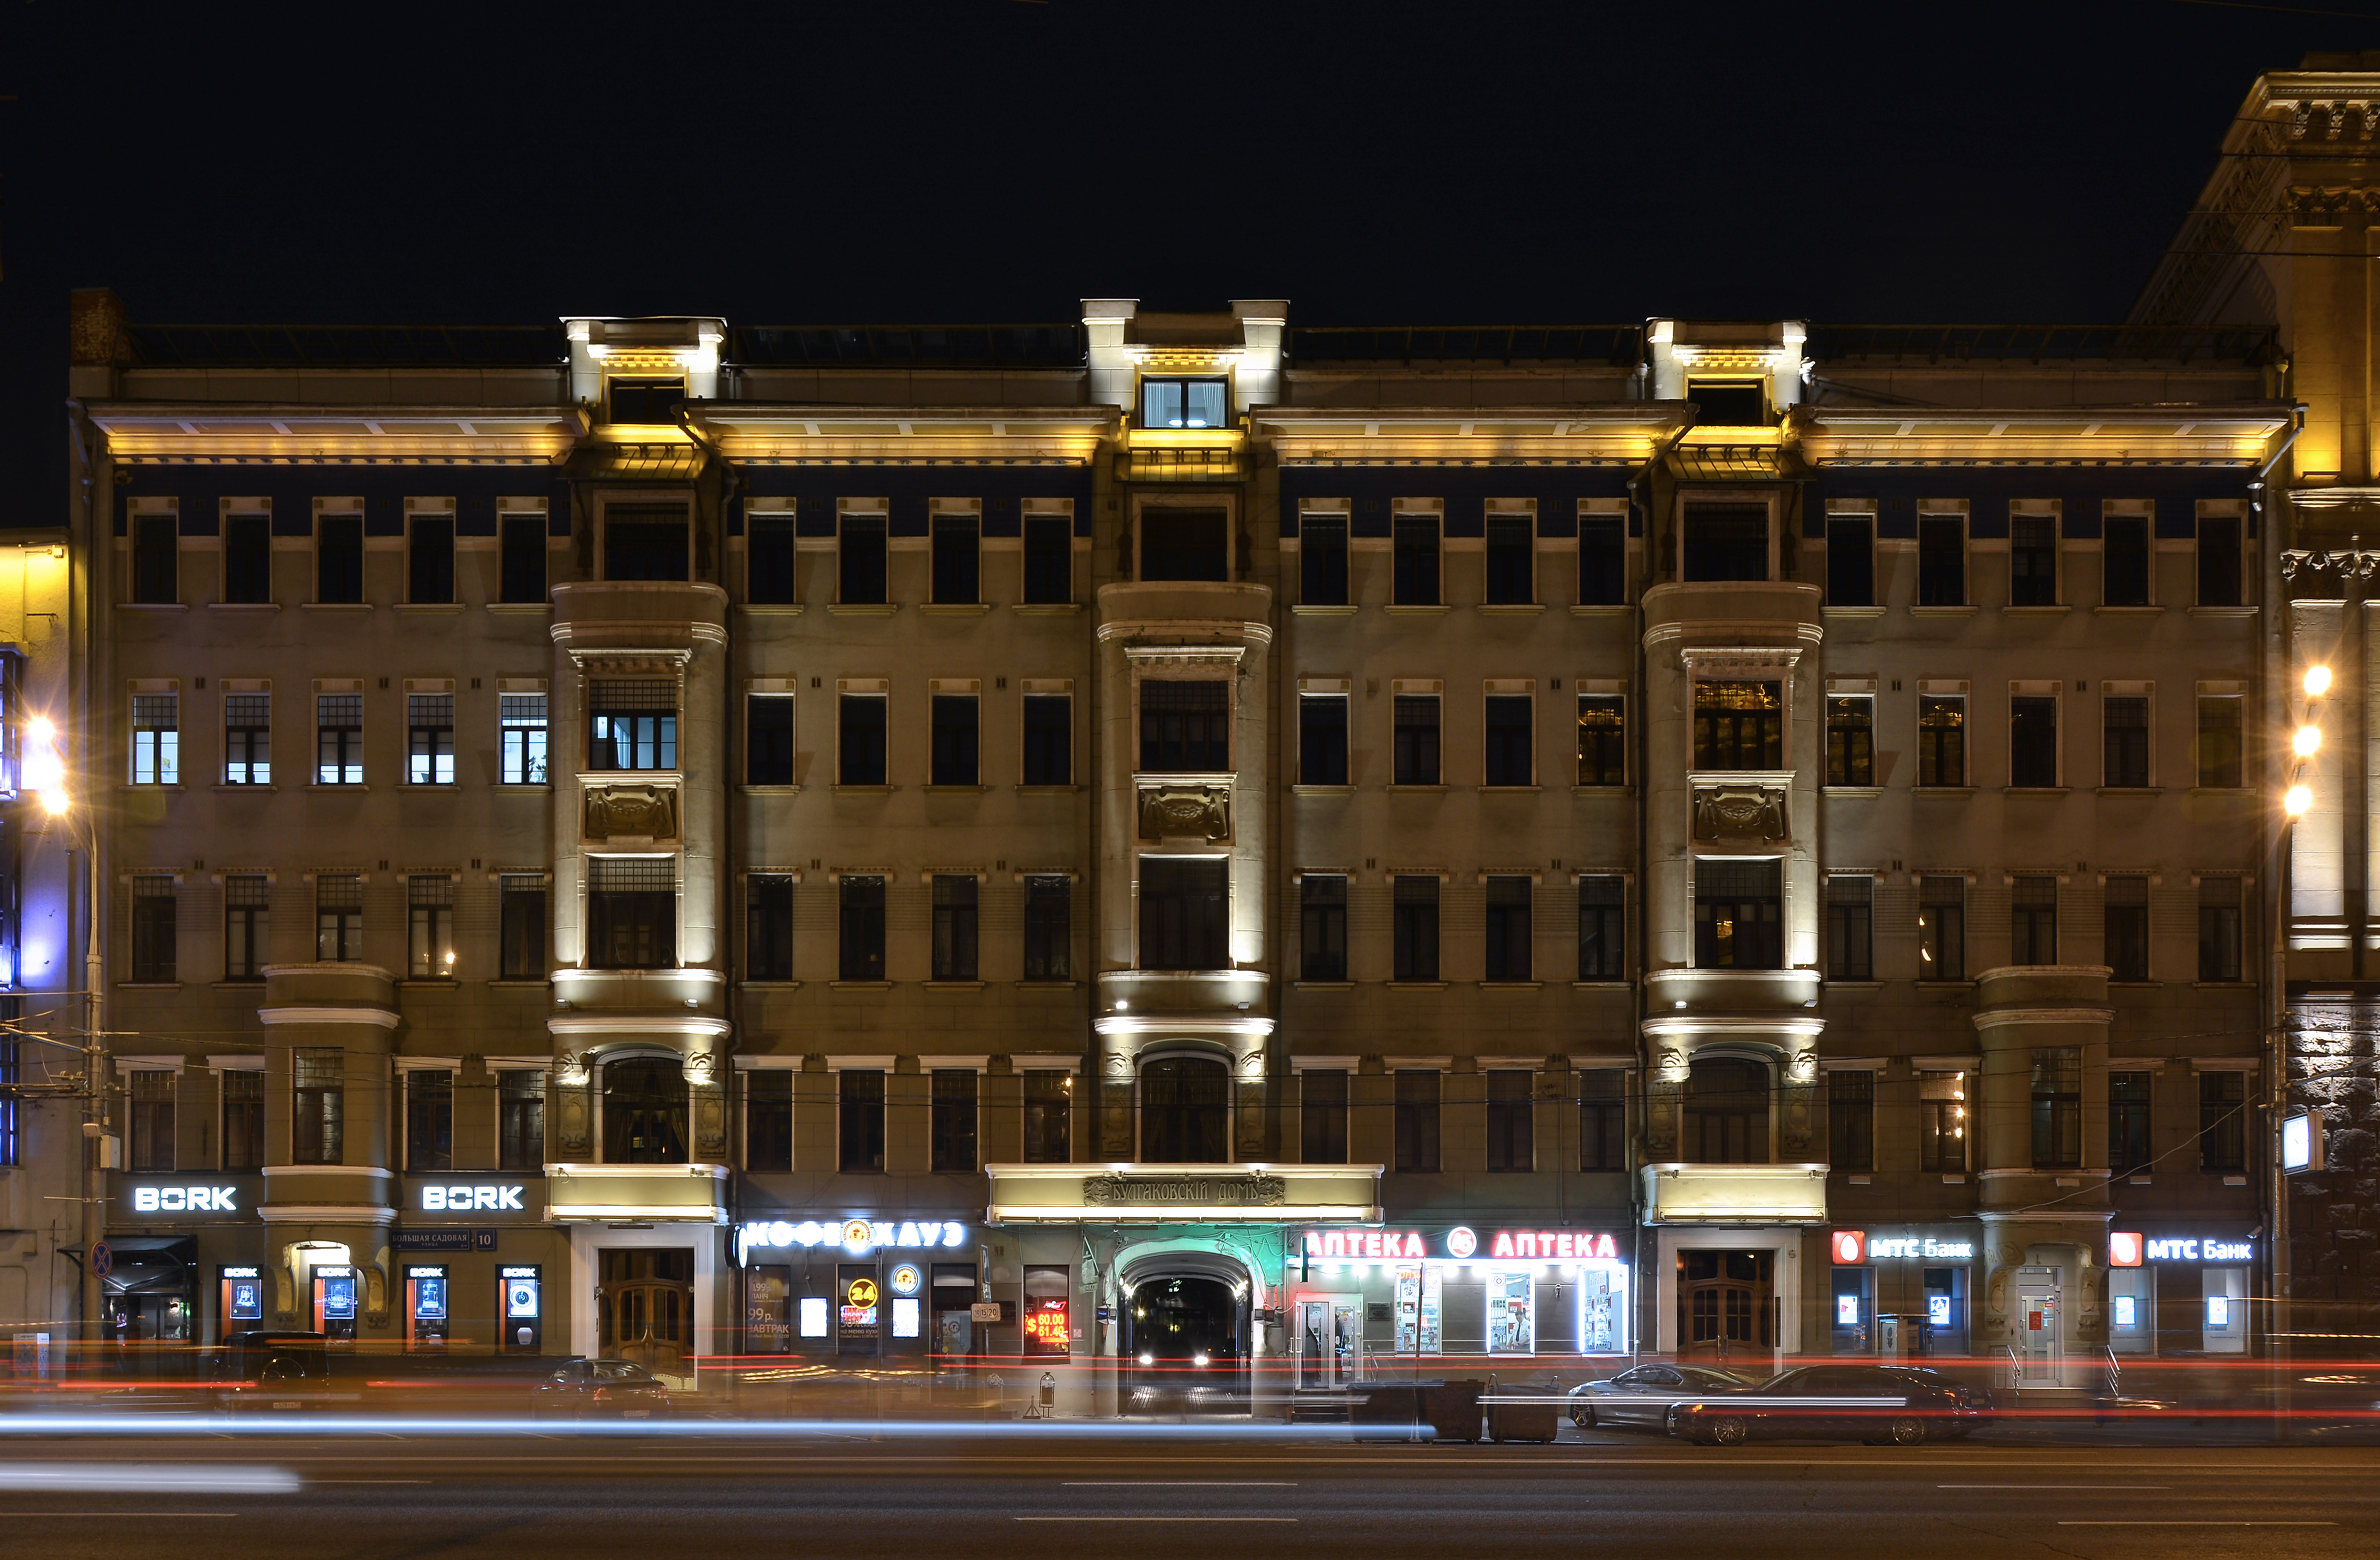 filepigits apartment house at night 01jpg - Brown Apartment 2015